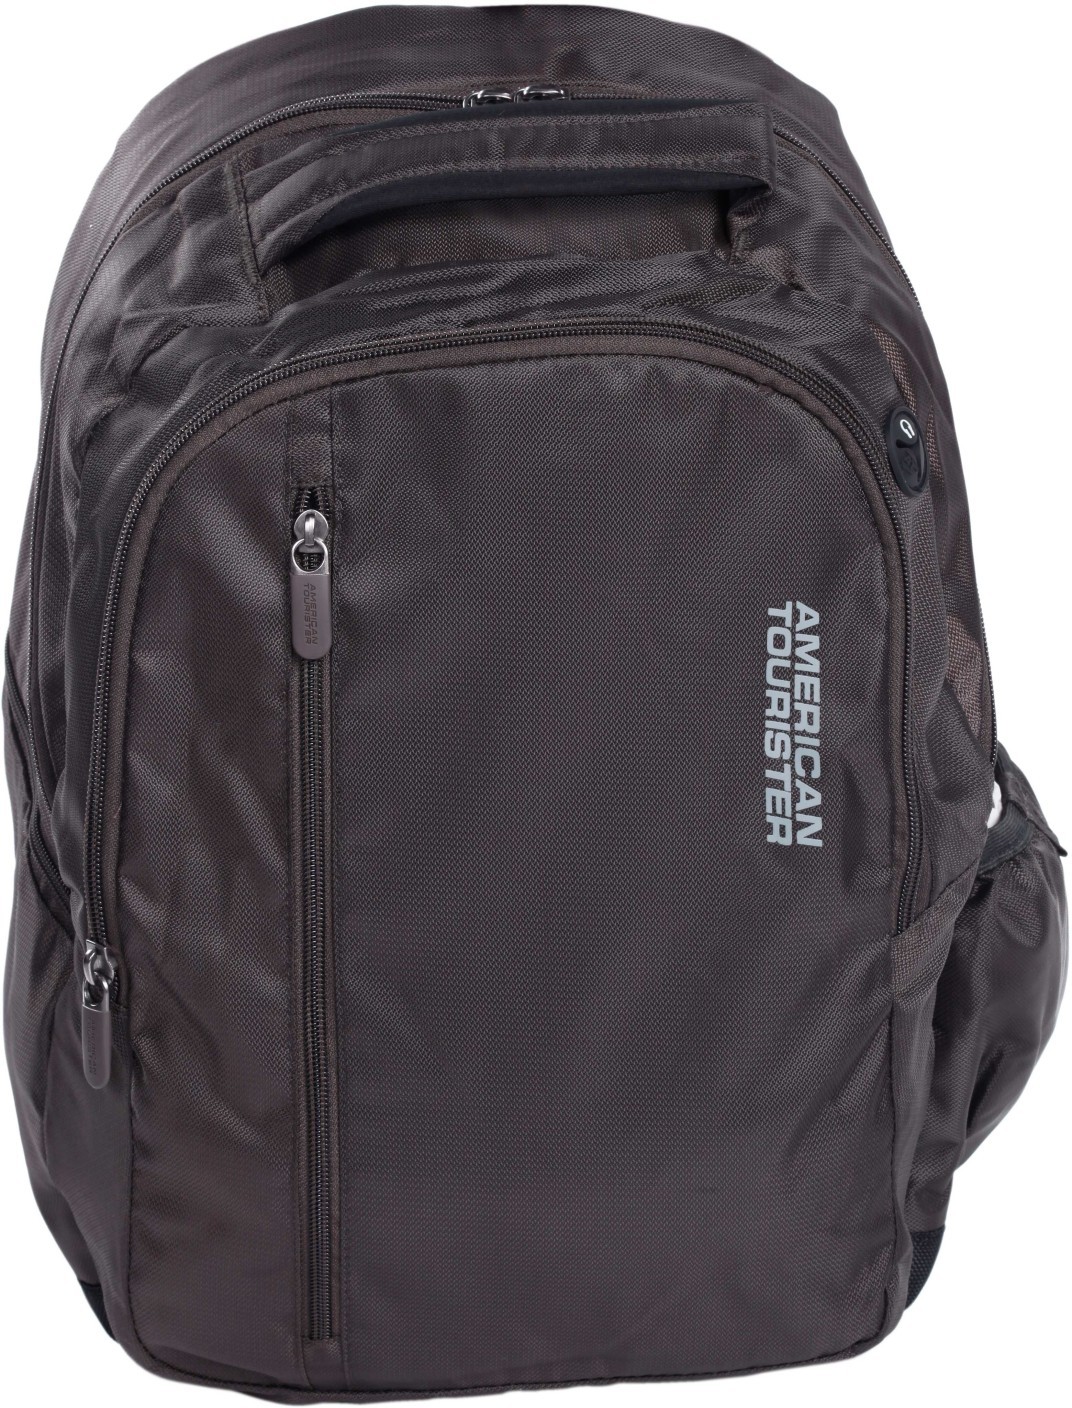 American tourister laptop backpack tobacco price in india - American tourister office bags ...